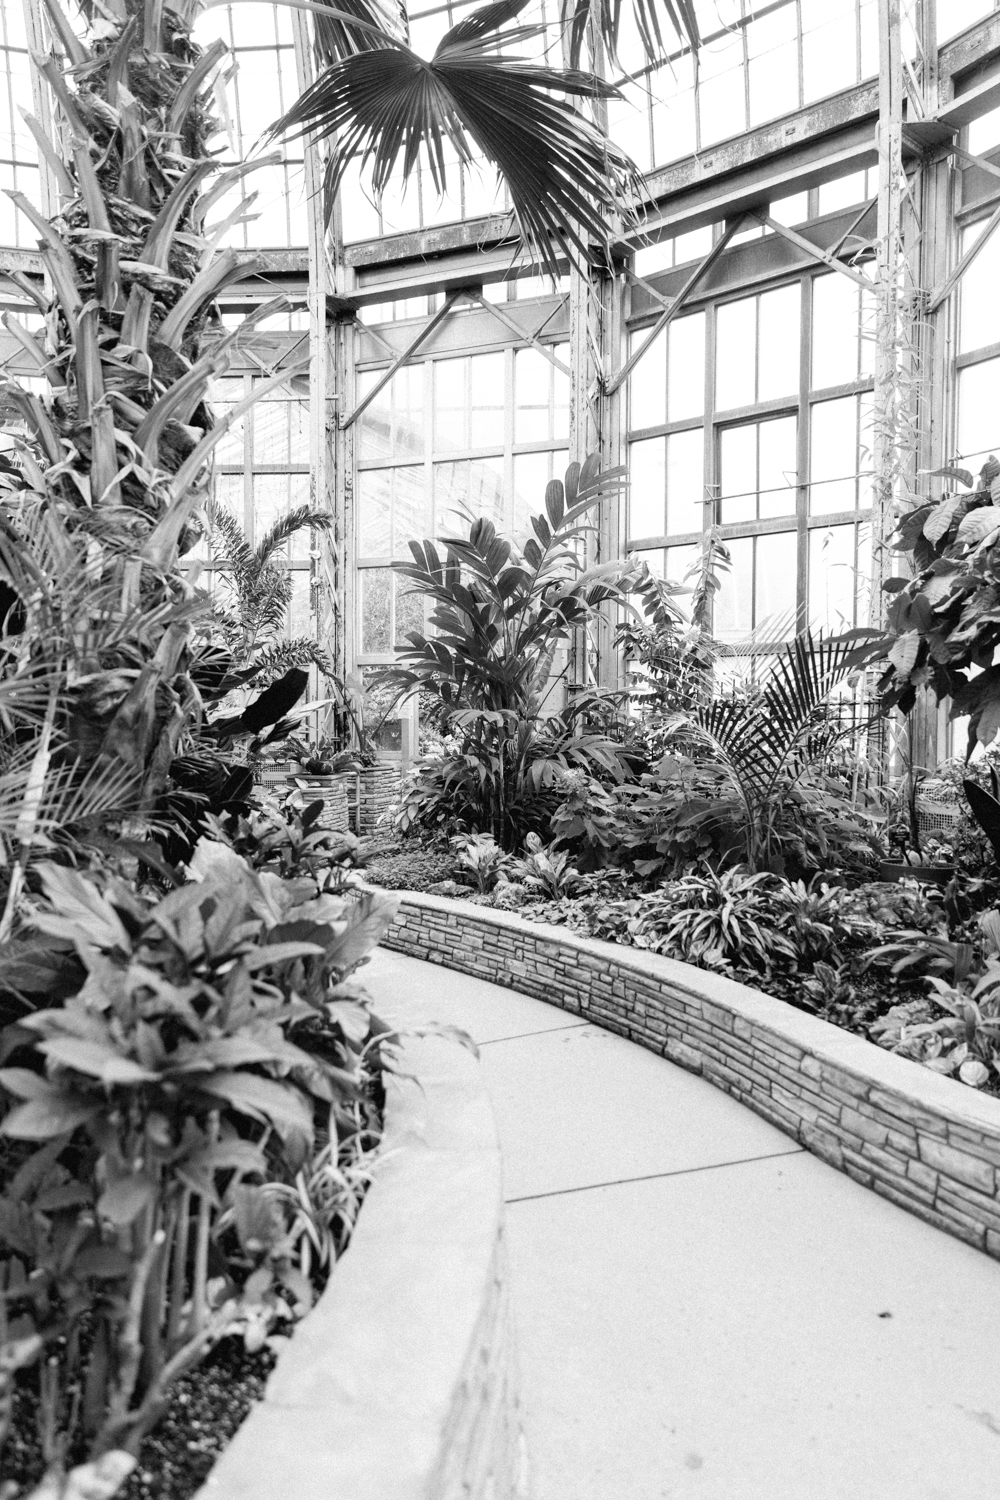 midwest-conservatory-plants-documentary-photographer